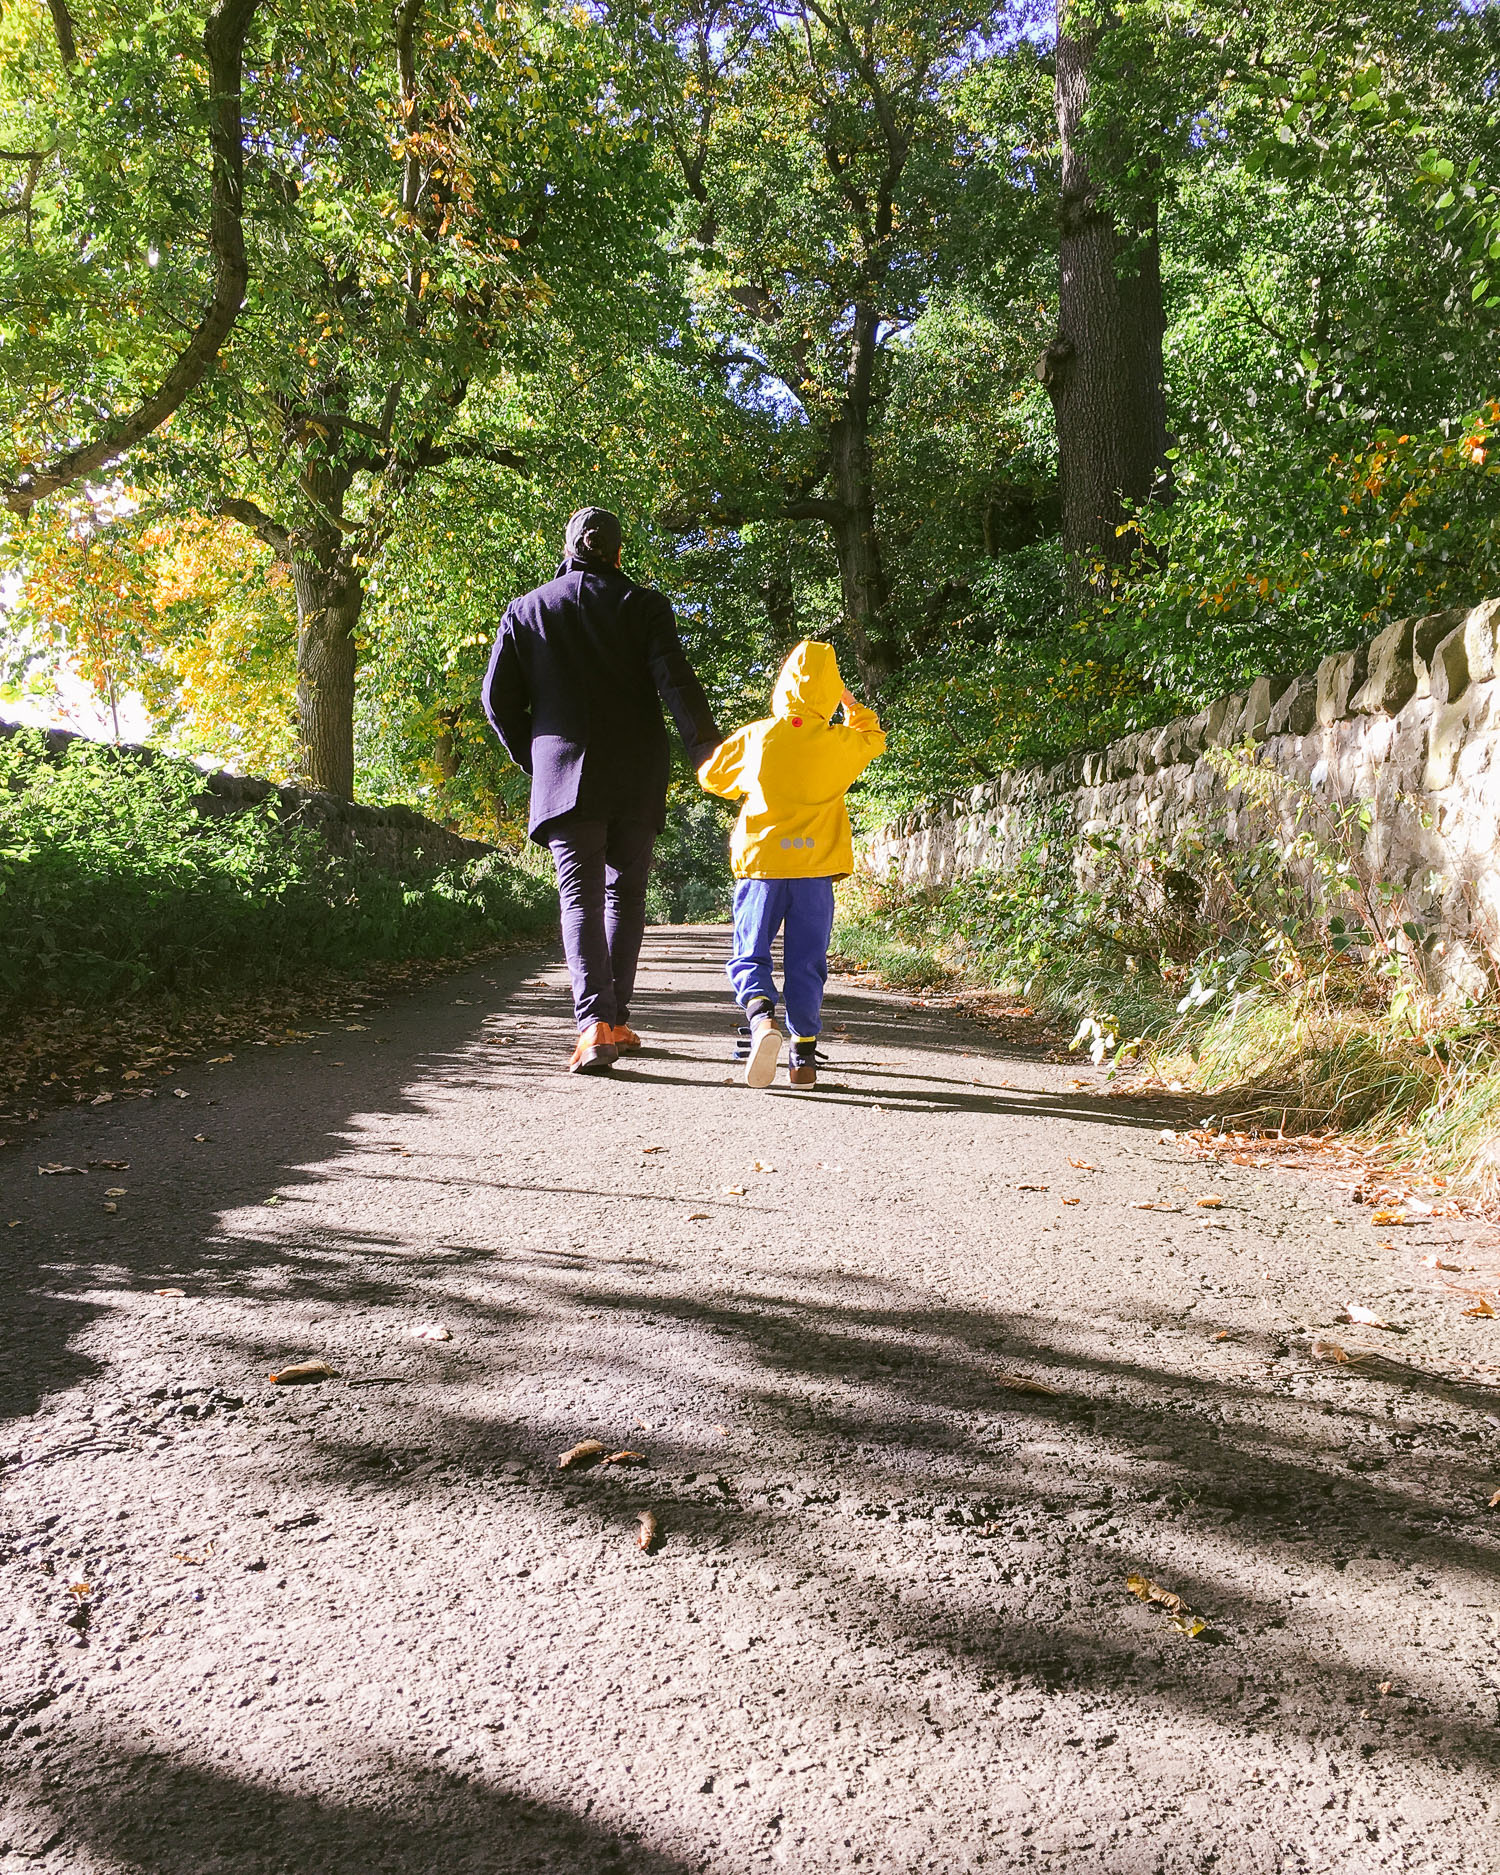 Costorphine hill is an easy climb for families